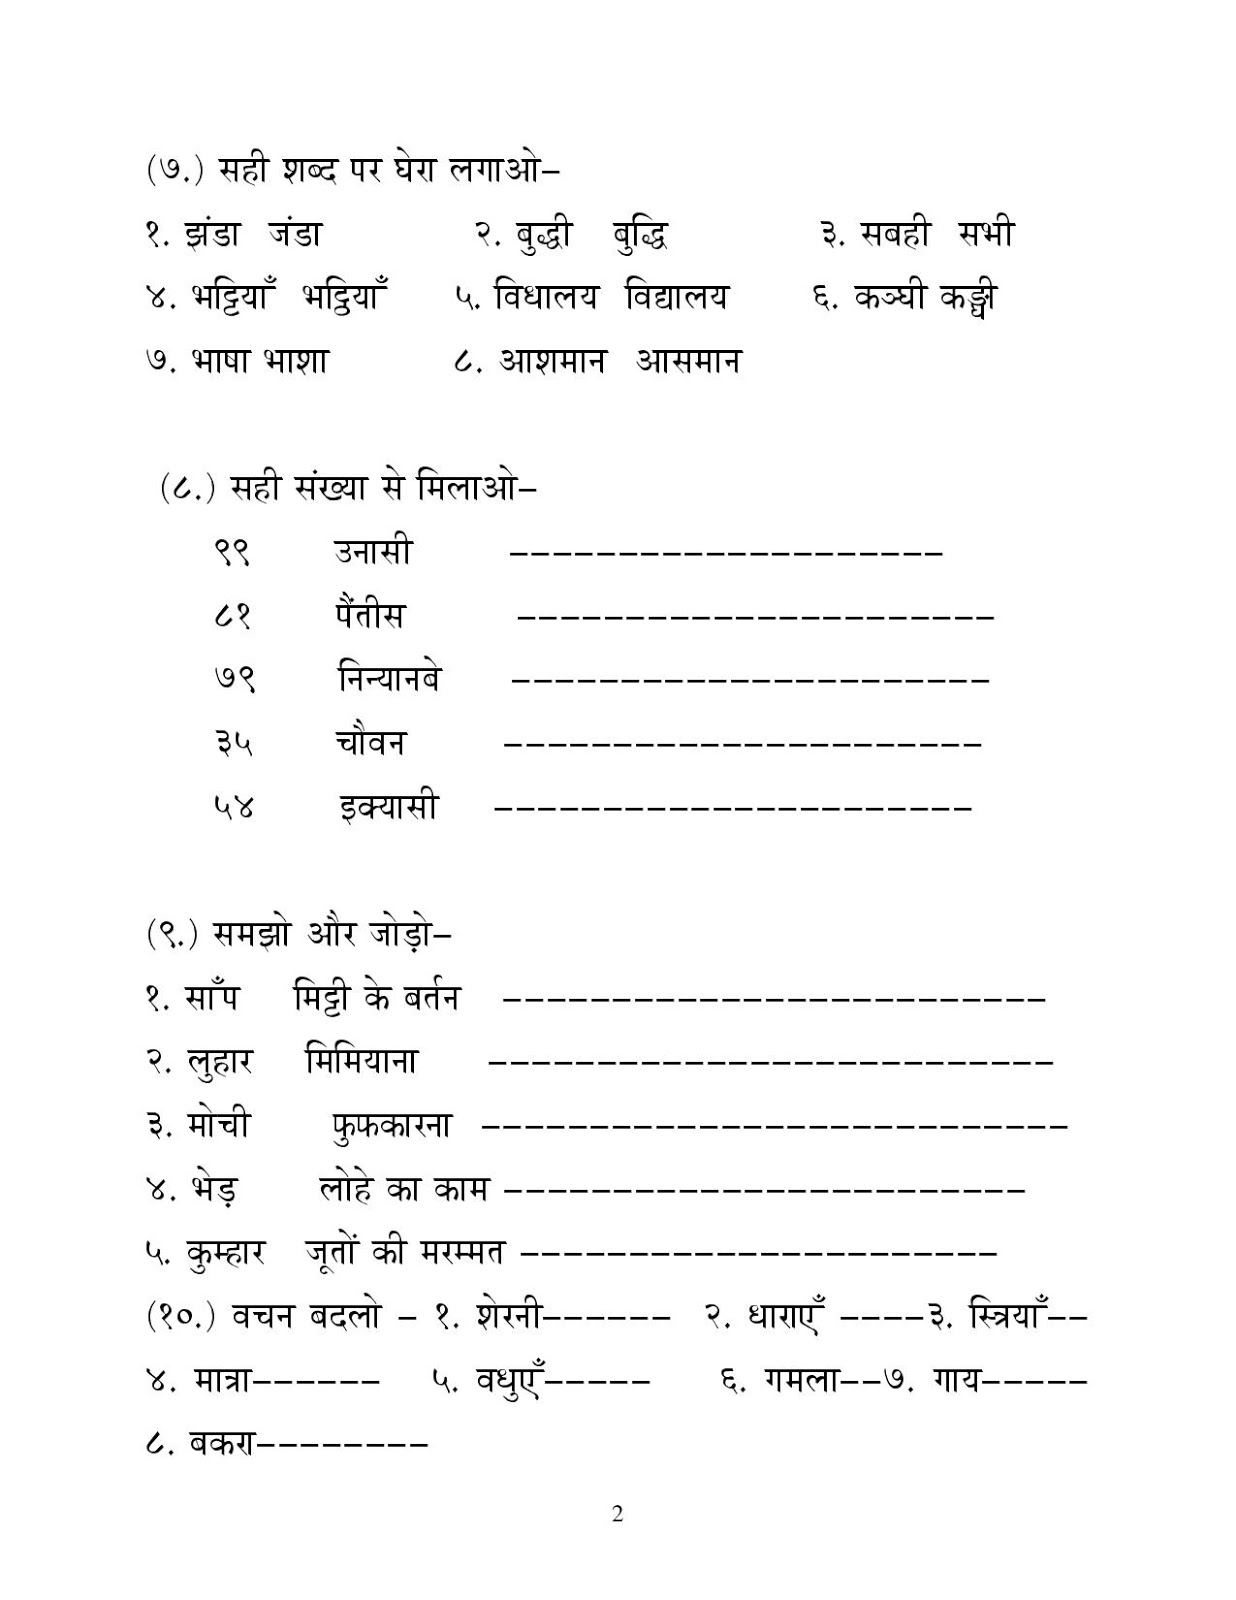 hight resolution of Hindi Worksheets For Grade 2 Cbse   Printable Worksheets and Activities for  Teachers